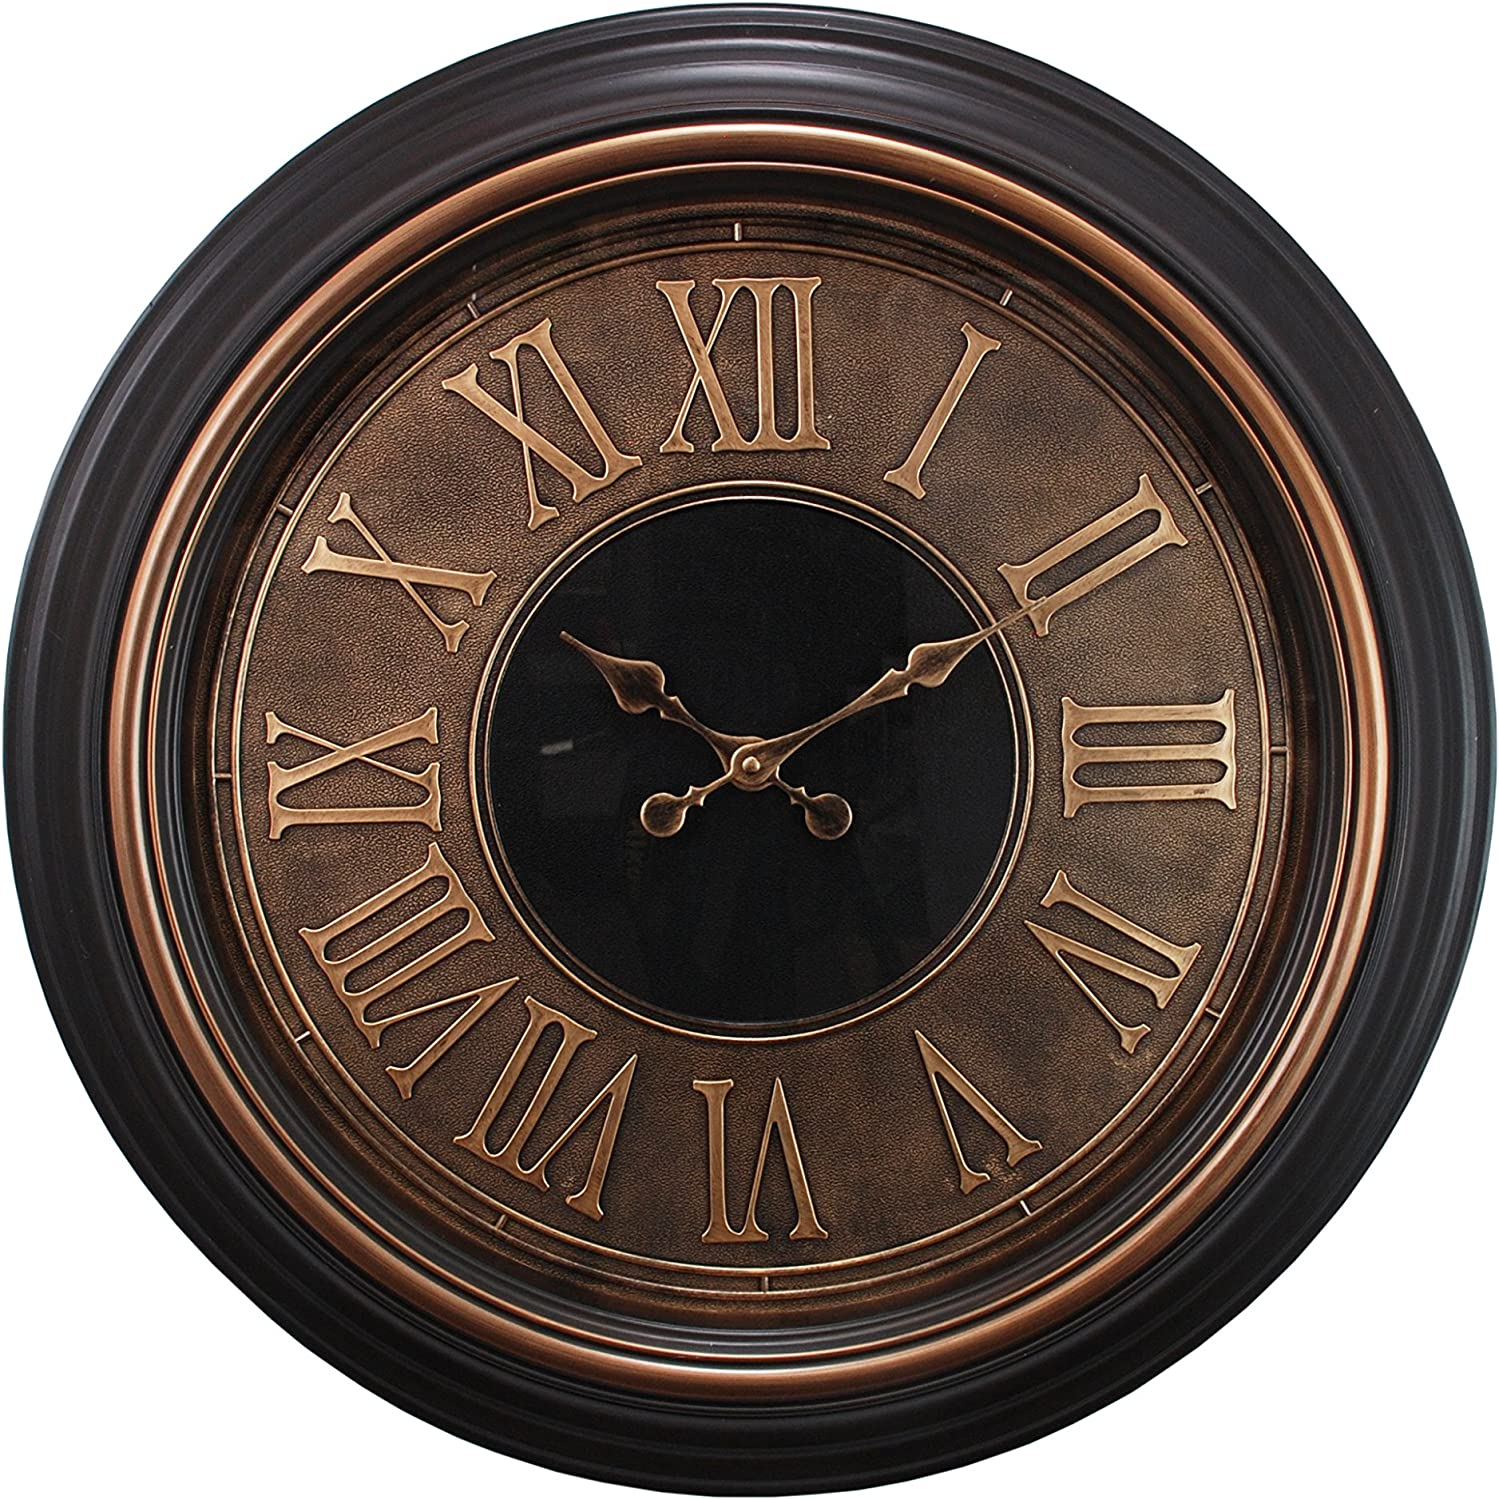 Kiera Grace Genoa Oversized Wall Clock with Raised Roman Numerals, 23-Inch, 2-Inch Deep,  Antiqued Bronze with Copper Bezel